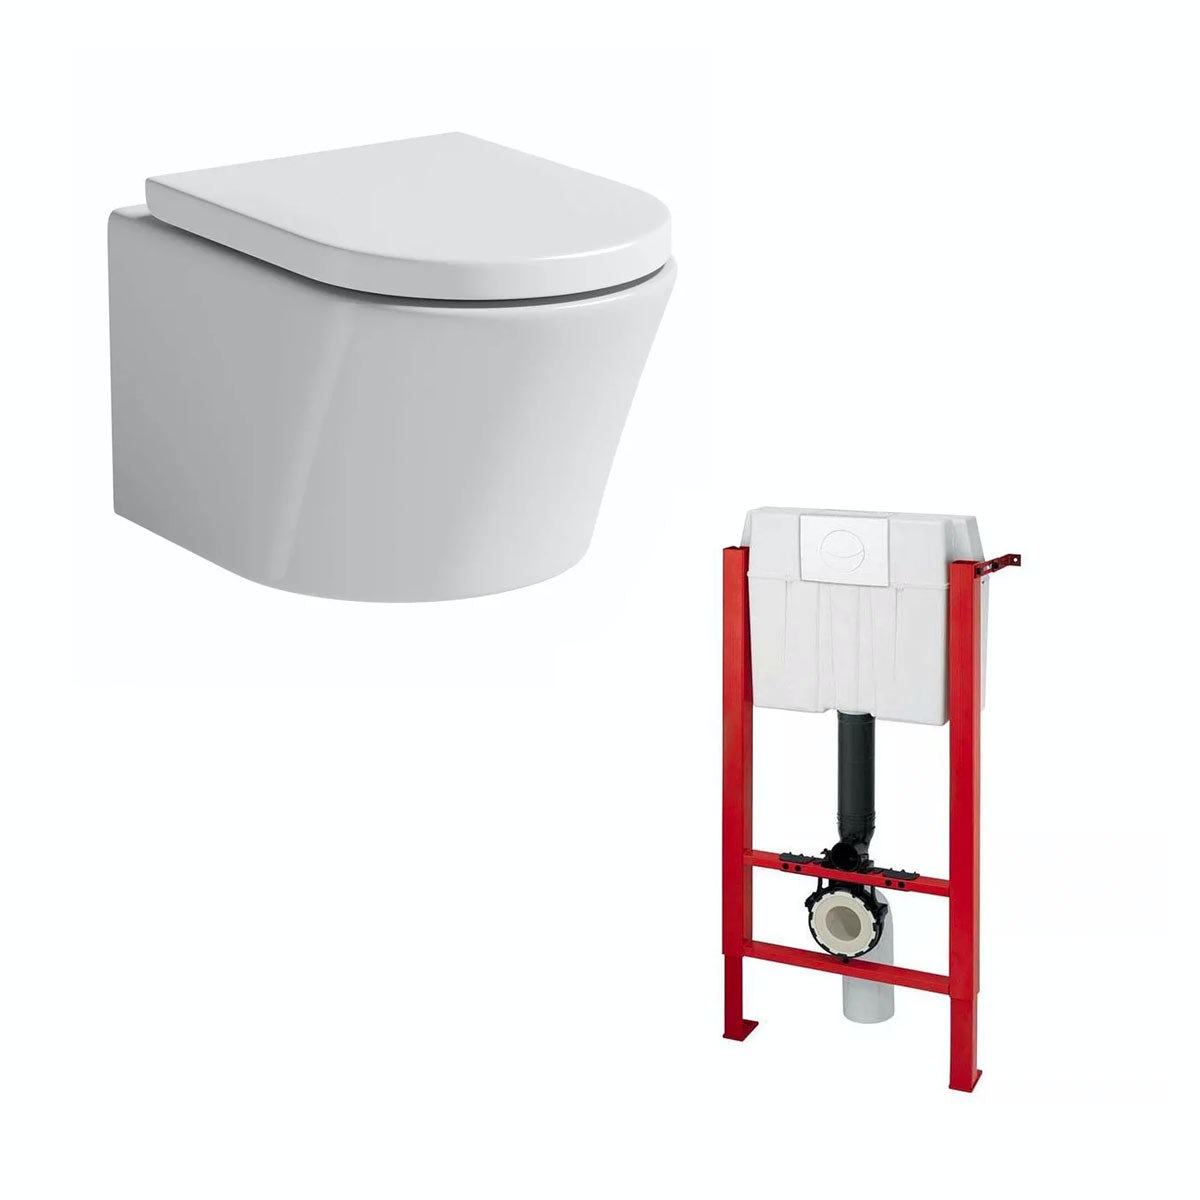 Mode Tate wall hung toilet with soft close seat and wall hanging frame